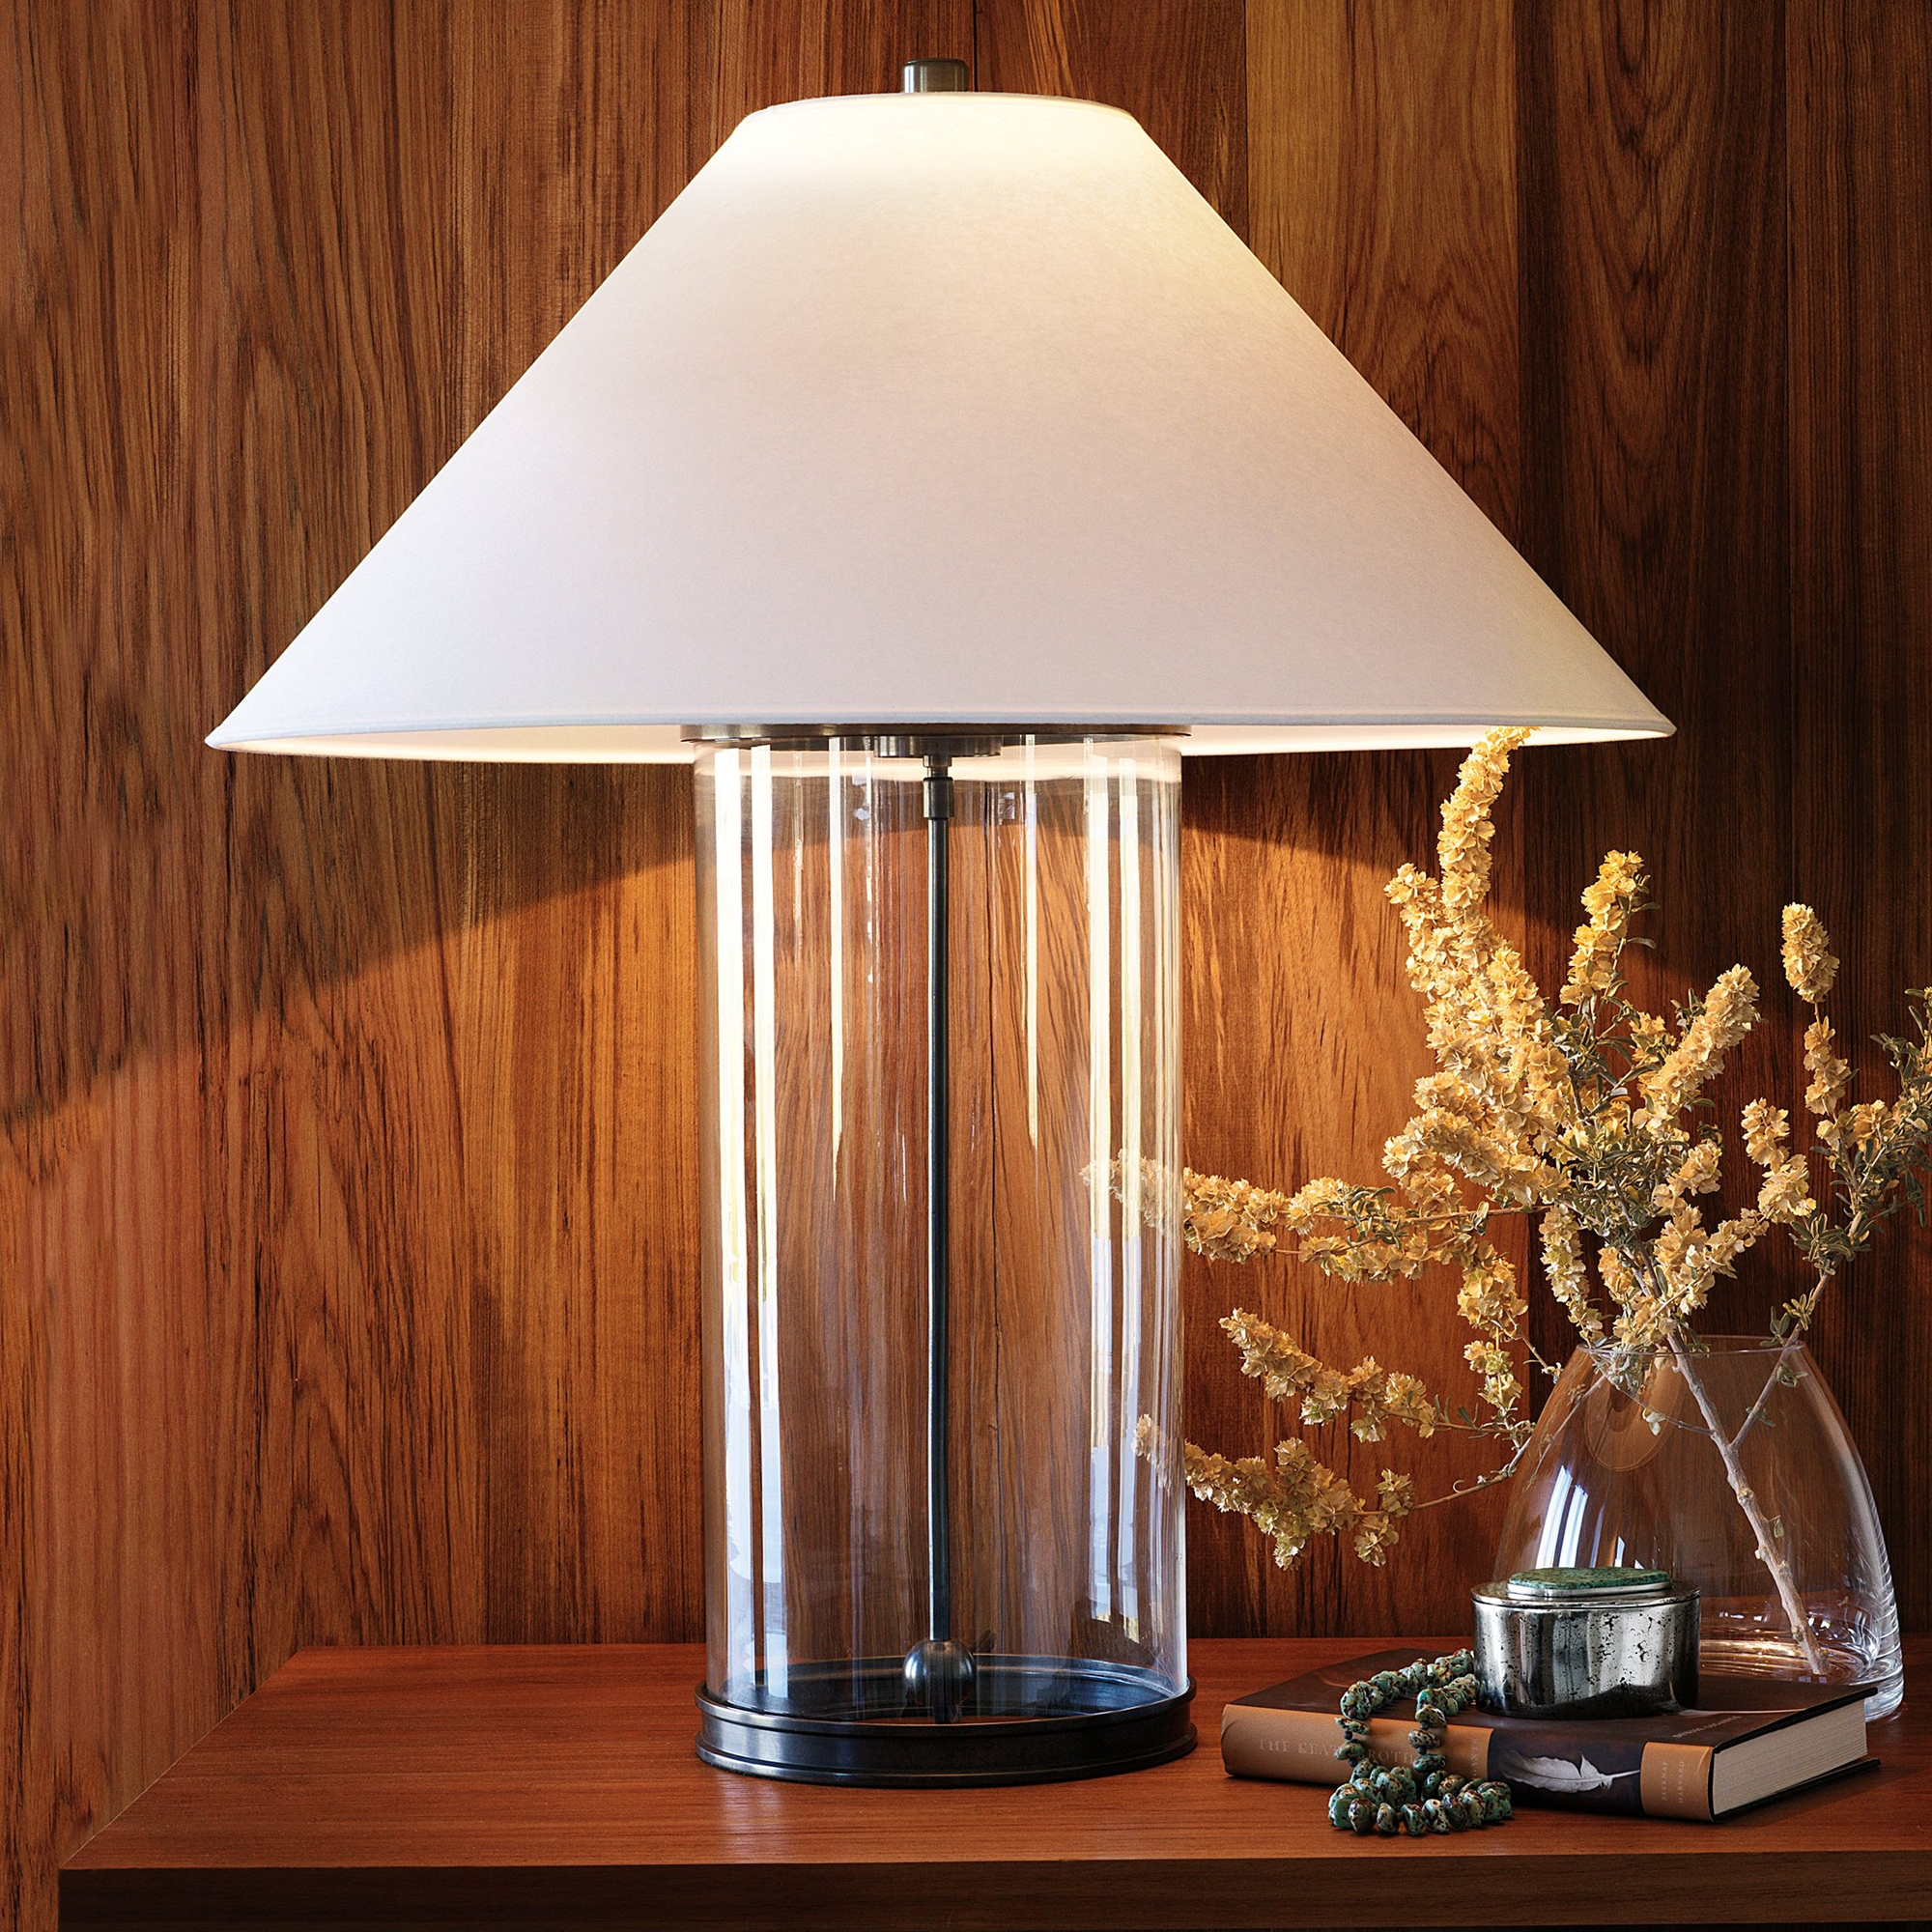 modern table lamp  table lamps lighting  ralphlaurencom - lighting will ship separately all lighting items are final sale and cannotbe returned or exchanged